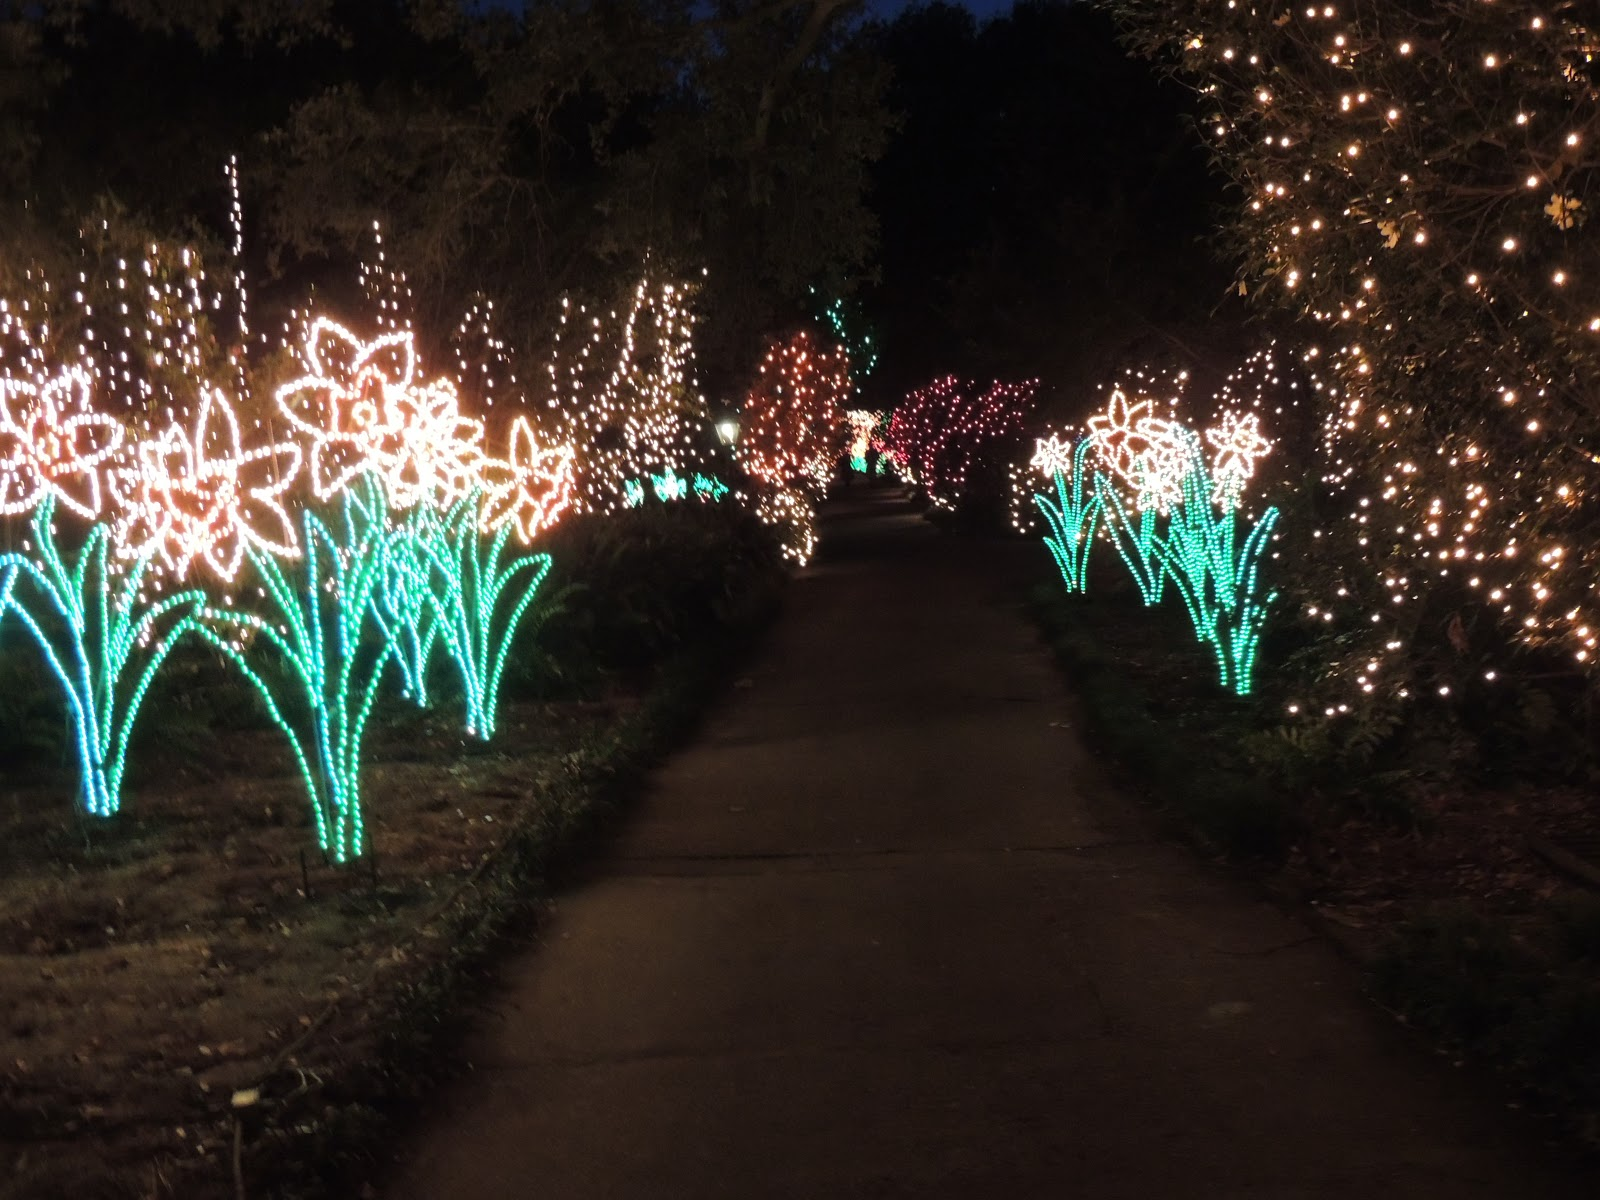 Down the road a piece in a 5th wheel bellingrath gardens christmas in lights display for Bellingrath gardens christmas lights 2016